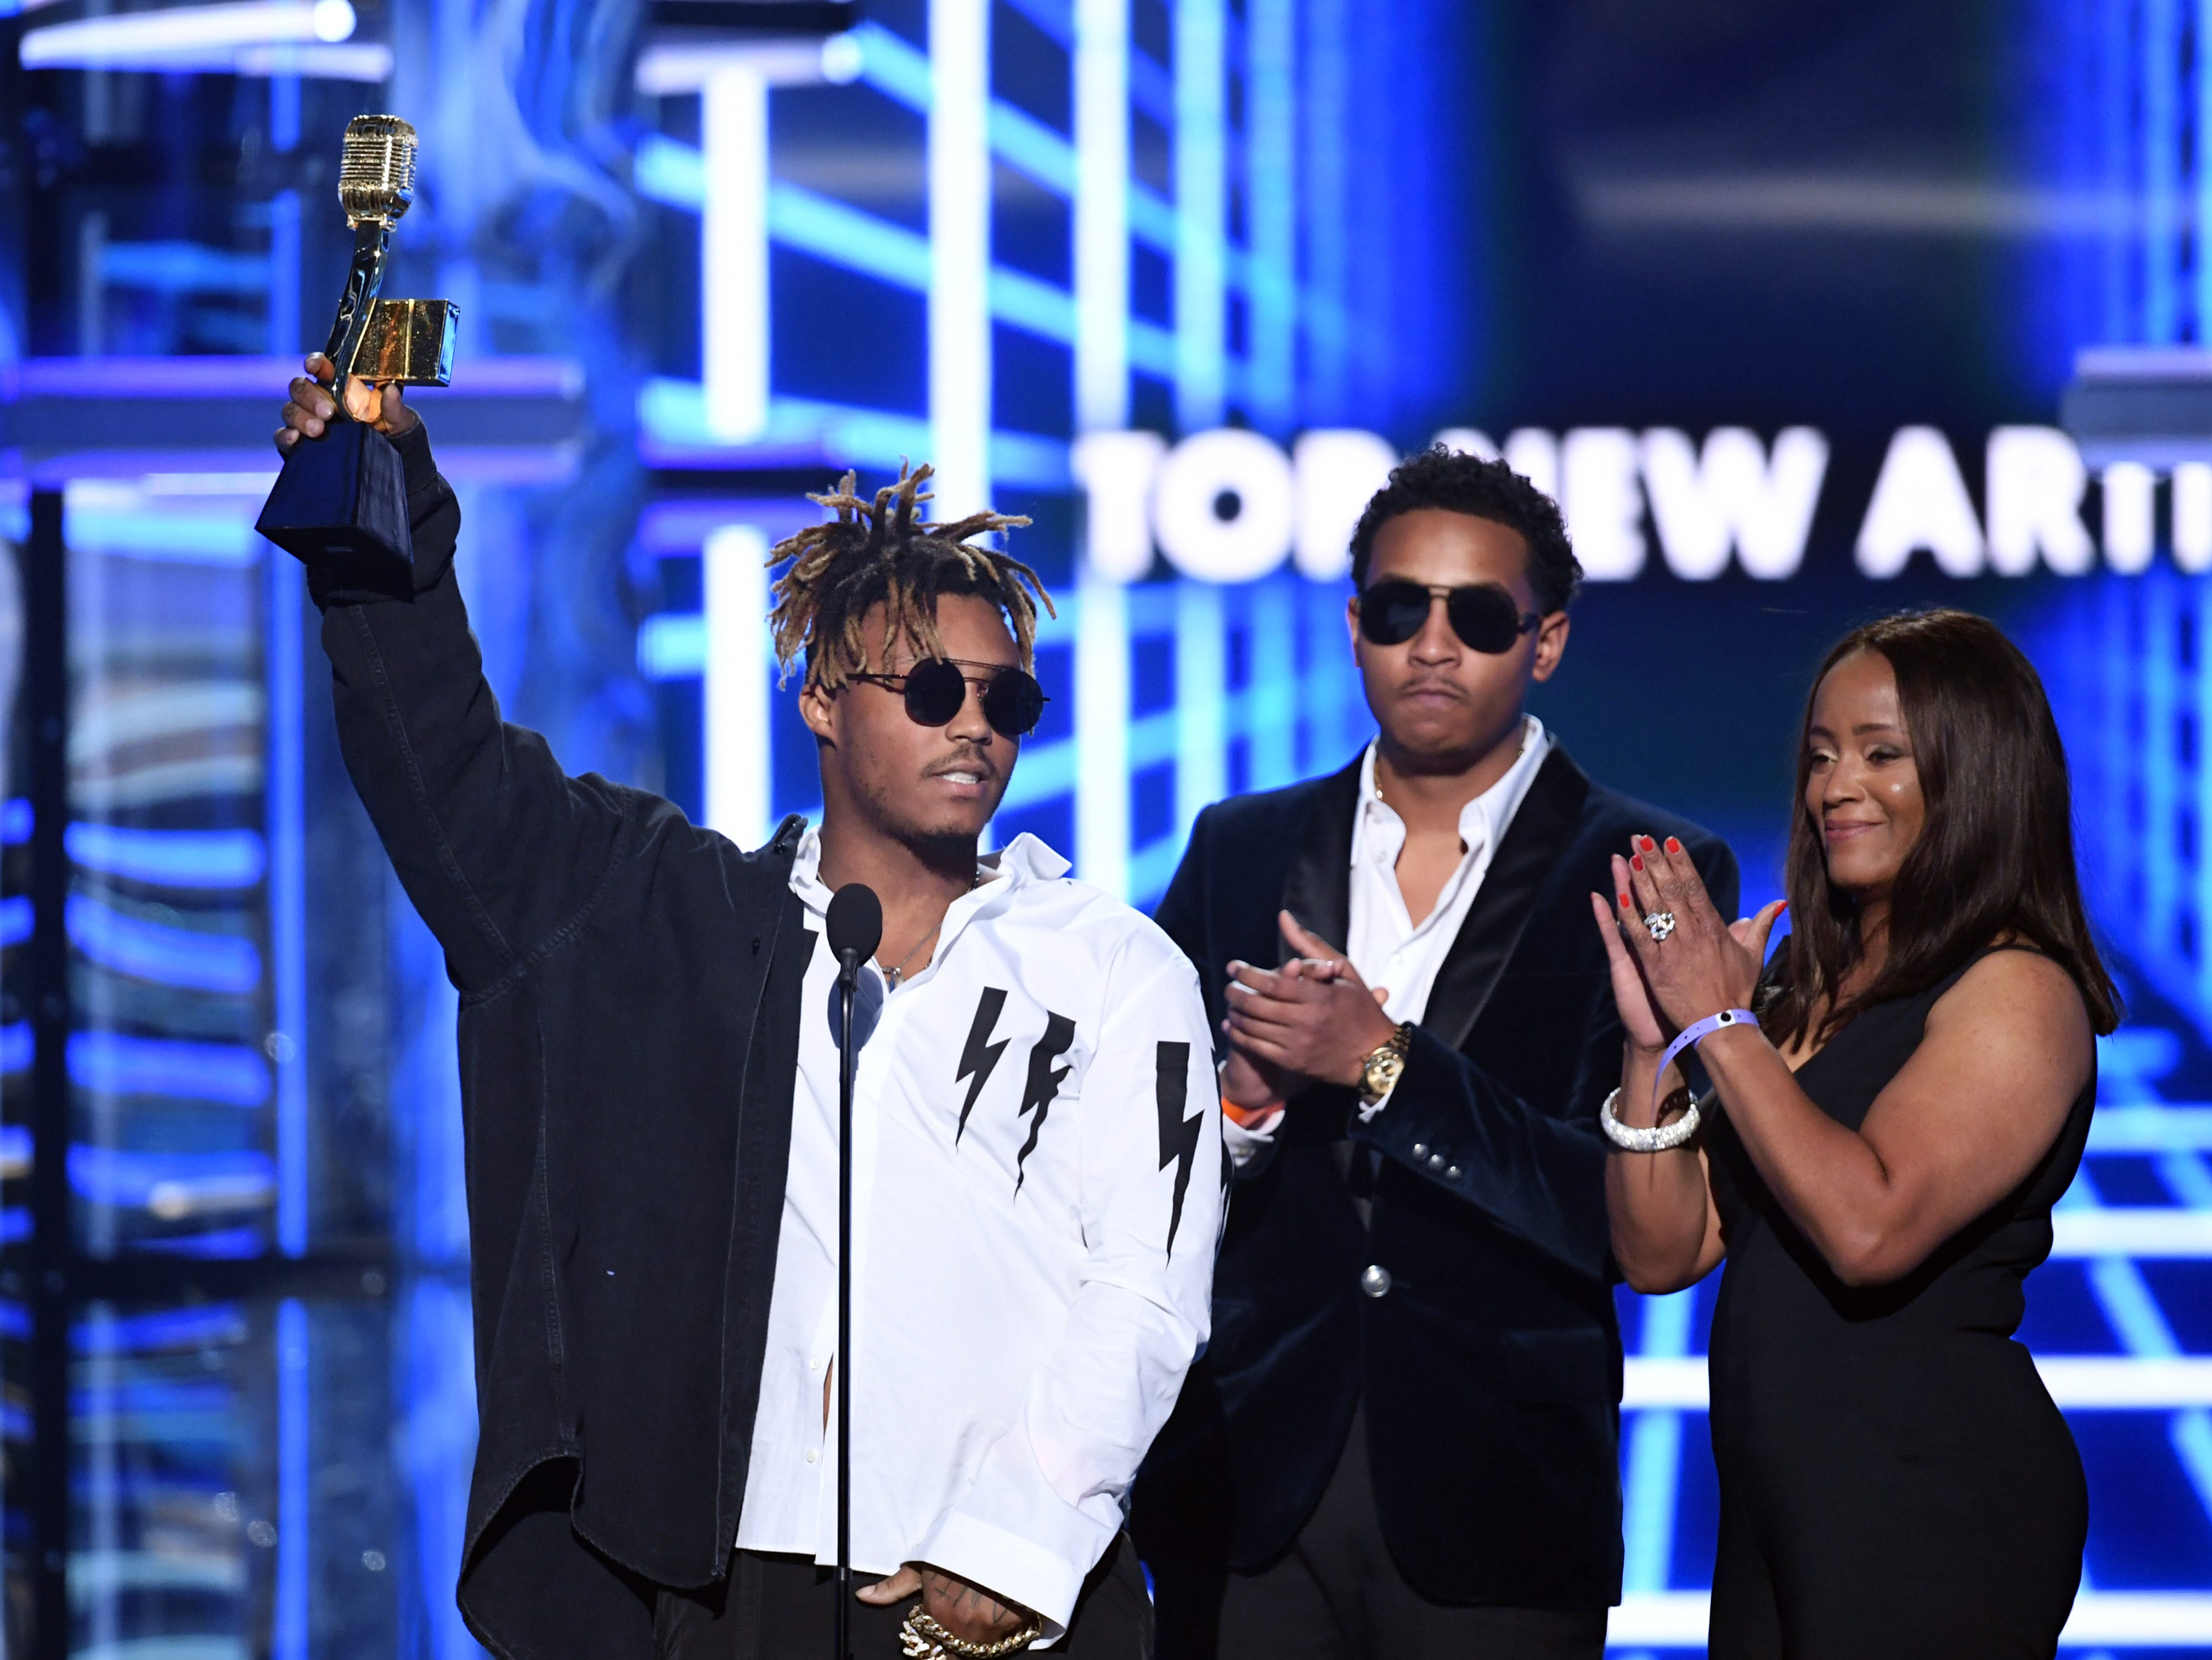 Juice Wrld accepts the Top New Artist award onstage during the 2019 Billboard Music Awards at MGM Grand Garden Arena on May 01, 2019 in Las Vegas, Nevada.